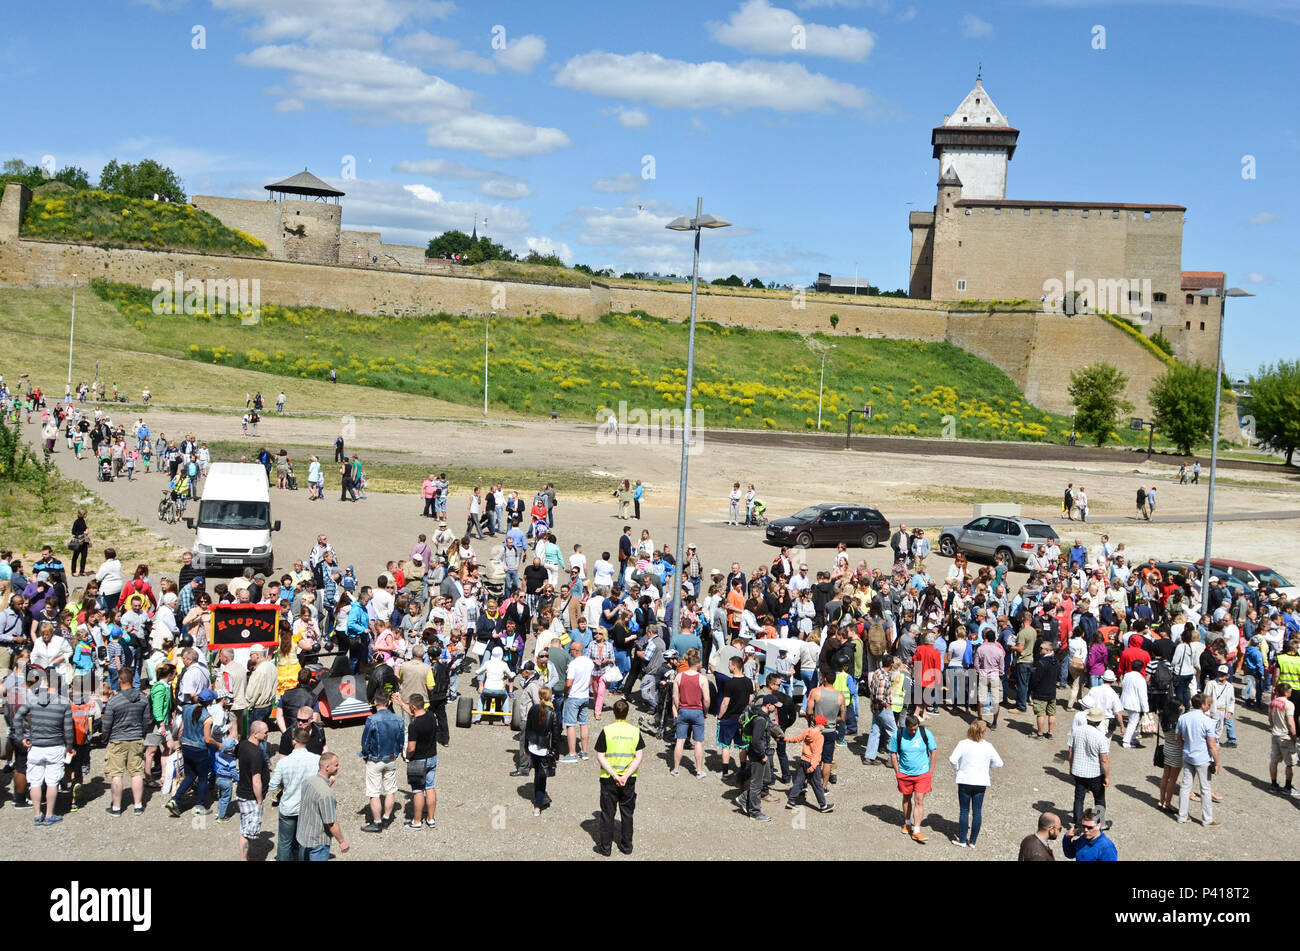 Estonian citizens gather around the contestants and their custom-made cars during a Soap Box Derby in Narva, Estonia, June 4, 2016. The Narva Castle is seen in the background. (U.S. Army photo by Staff Sgt. Steven M. Colvin) - Stock Image